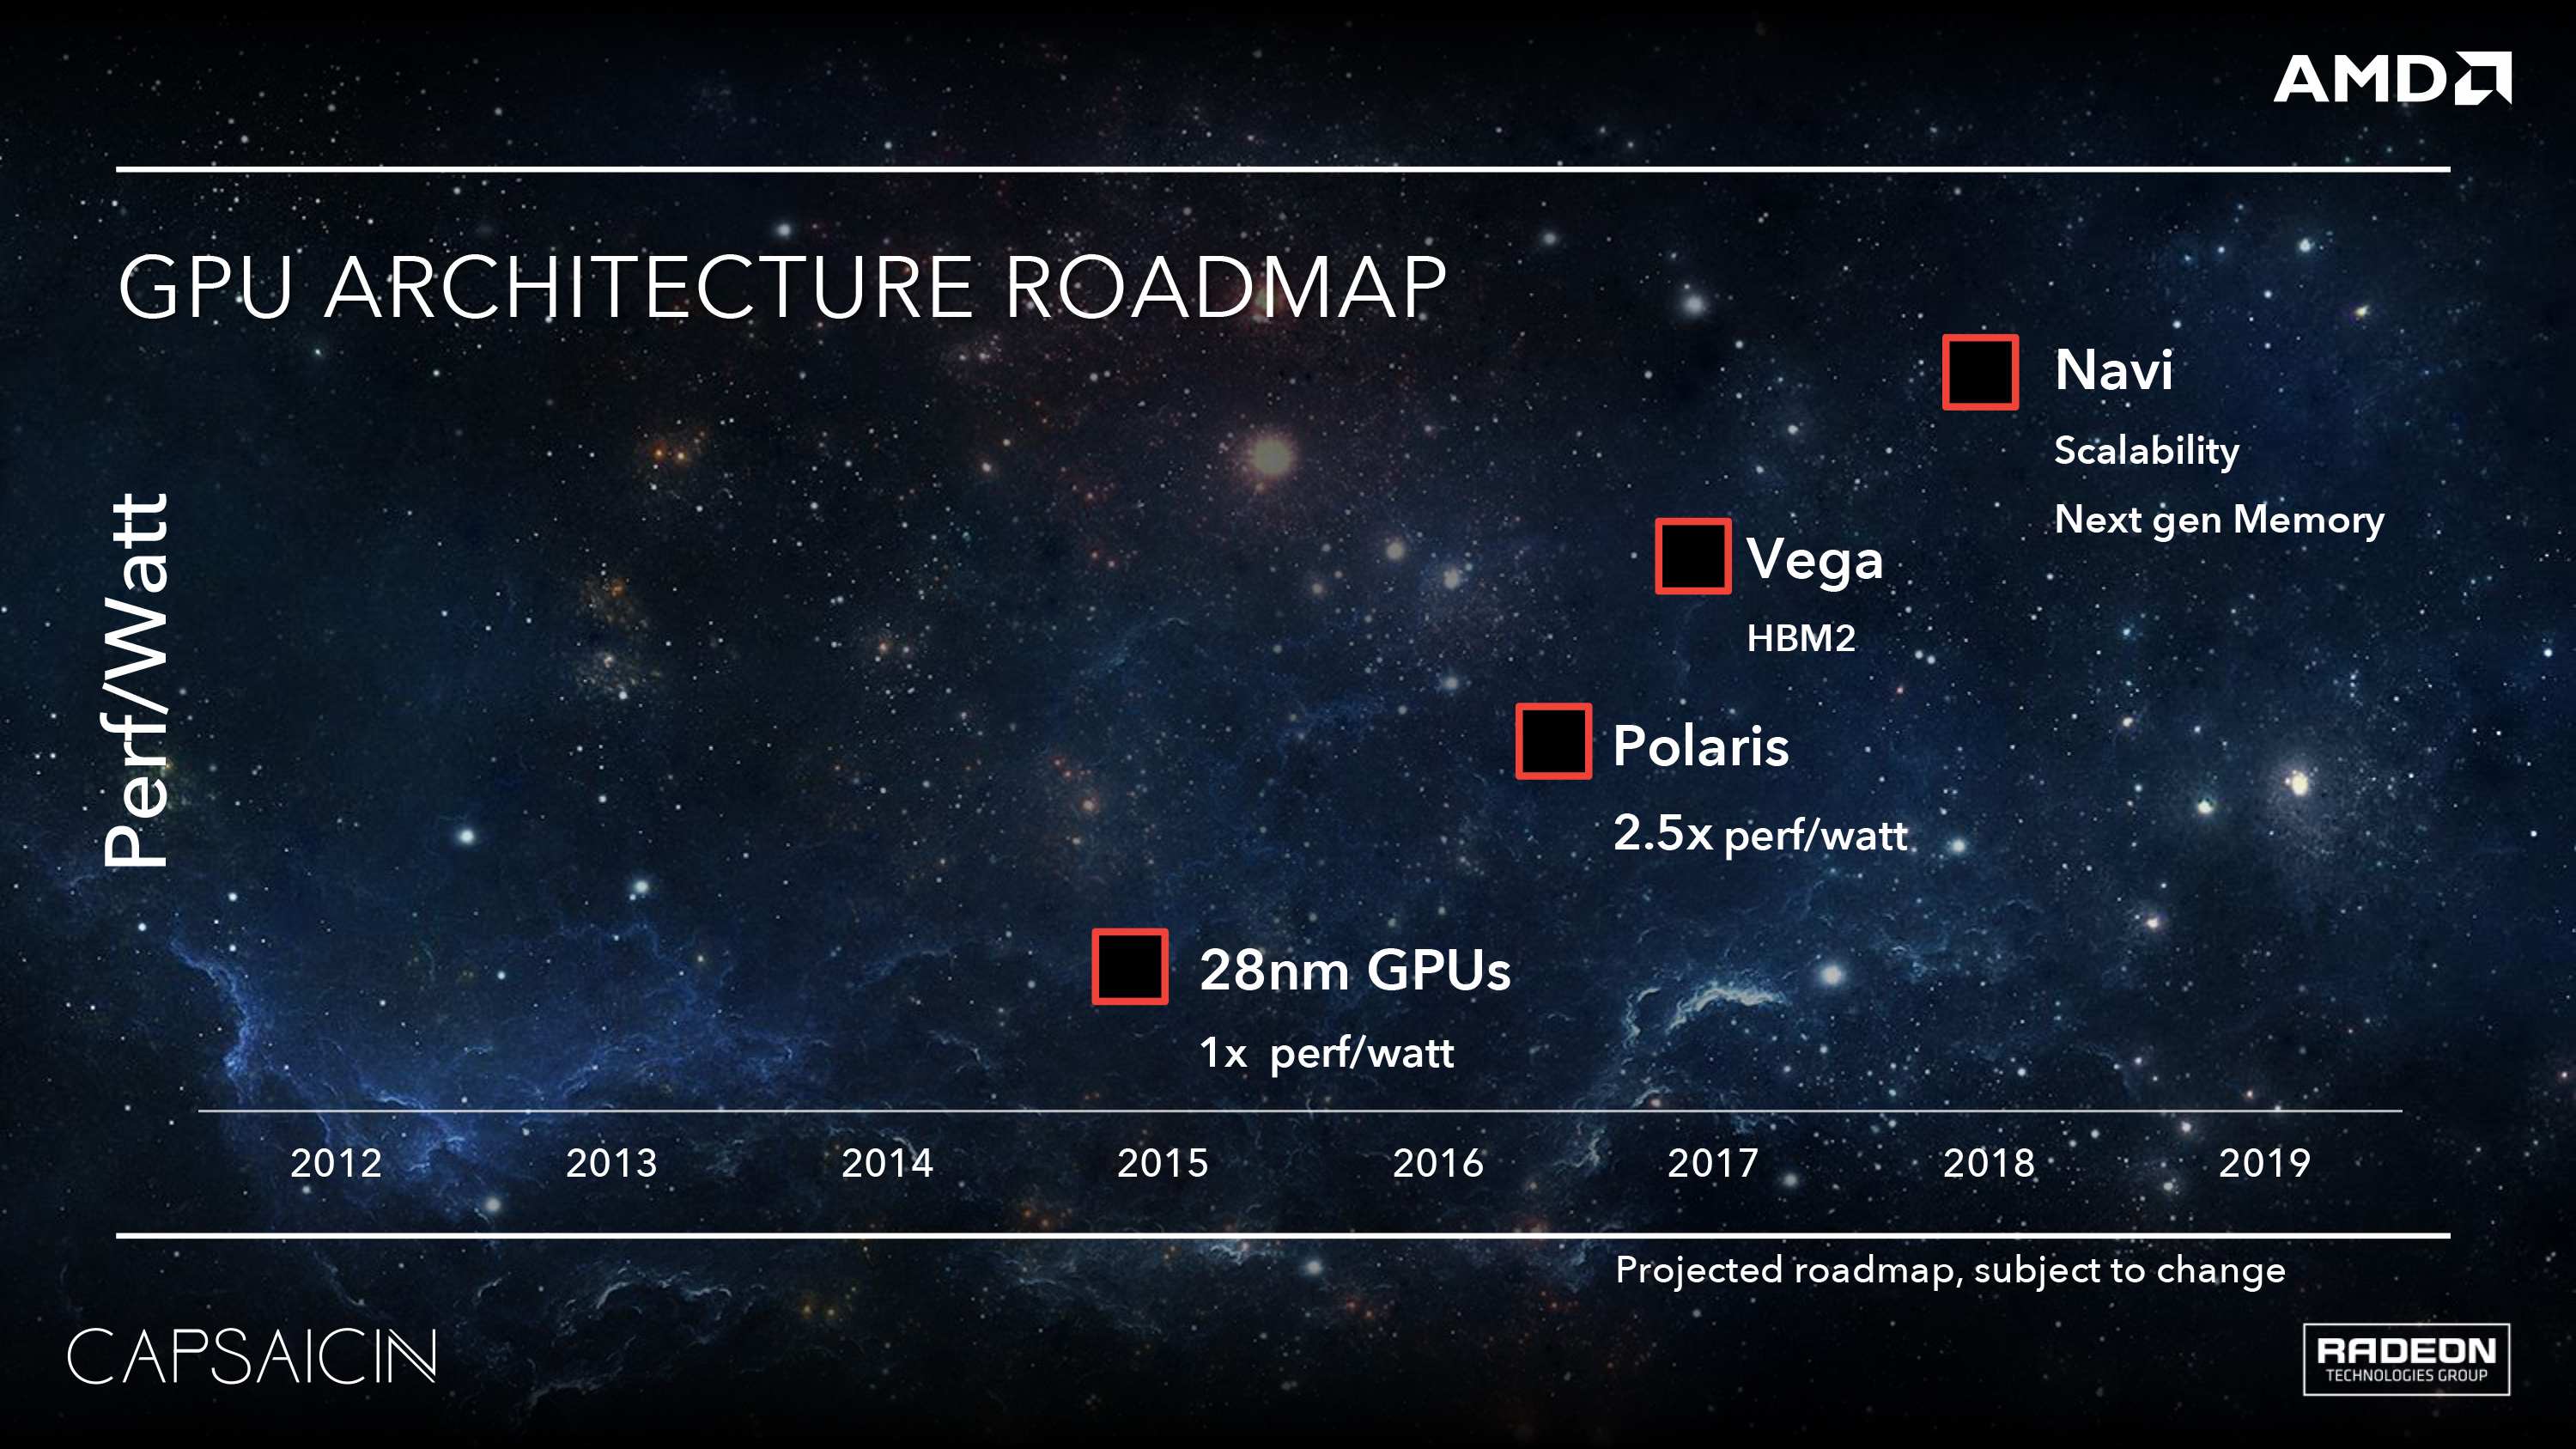 AMD's current GPU roadmap